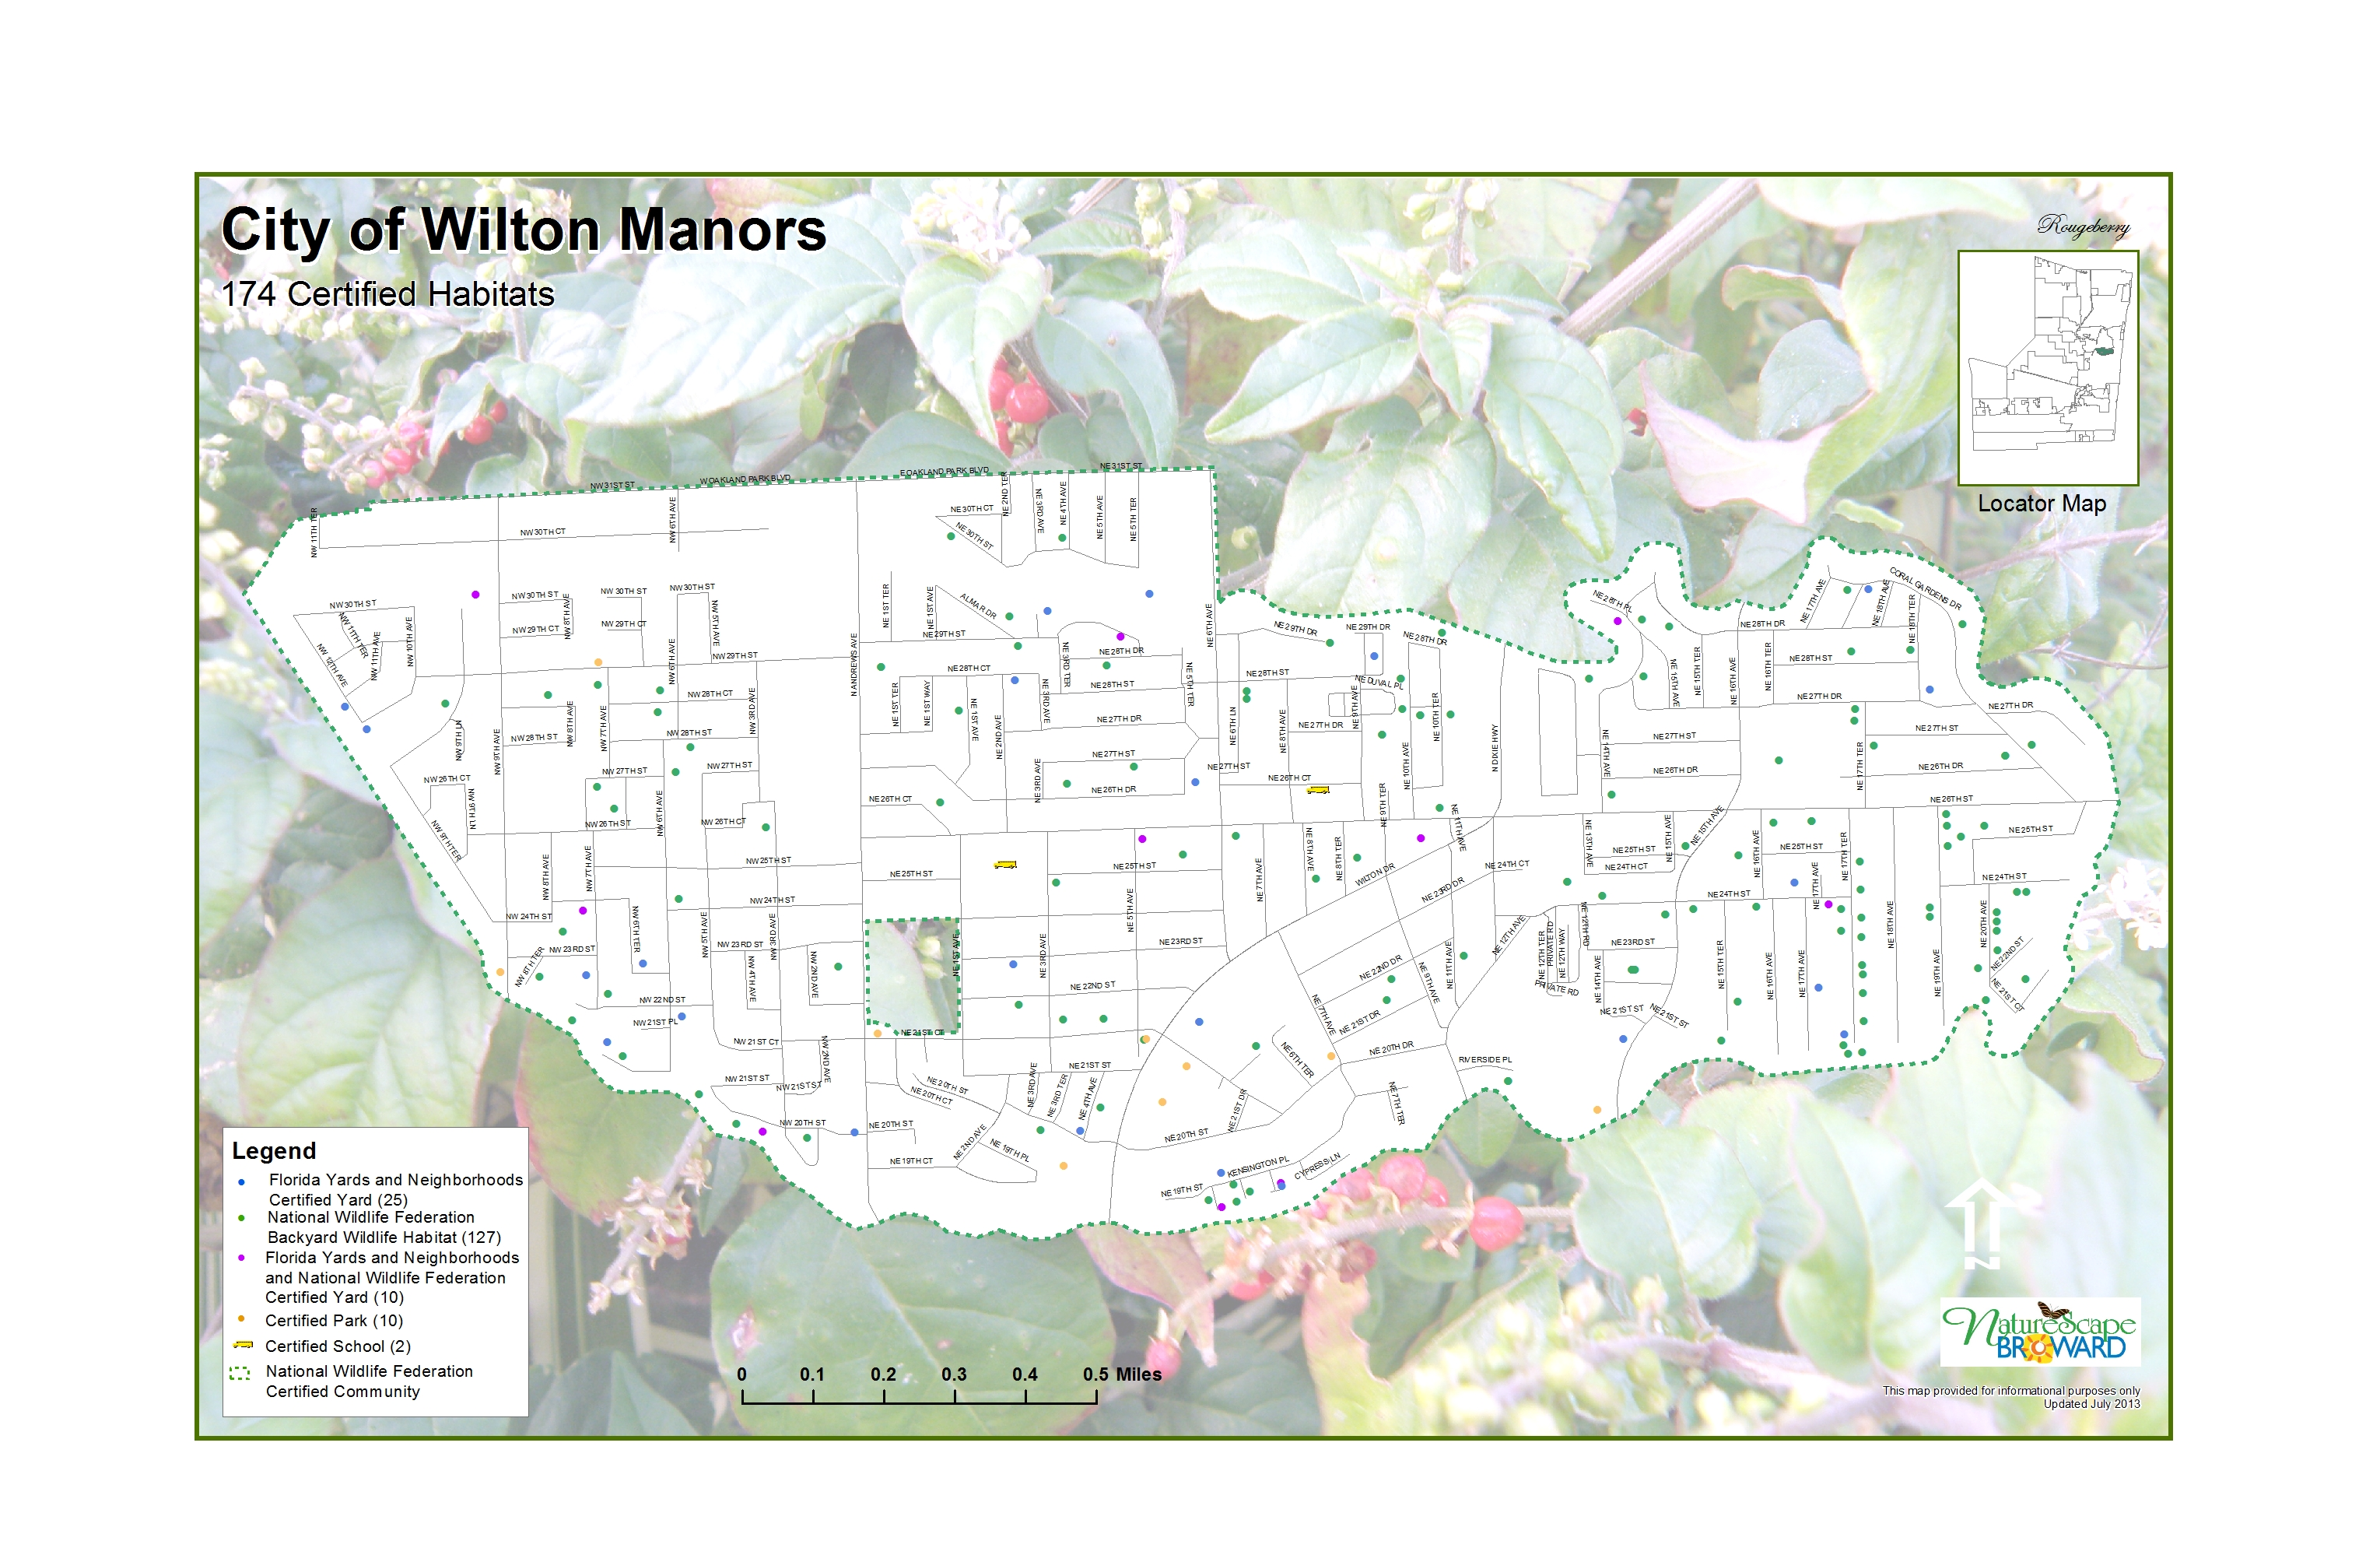 Wilton Manors Habitats 2013 - Island city                         is the 17th City in the Nation to be designated                         as a Certified Wildlife Habitat